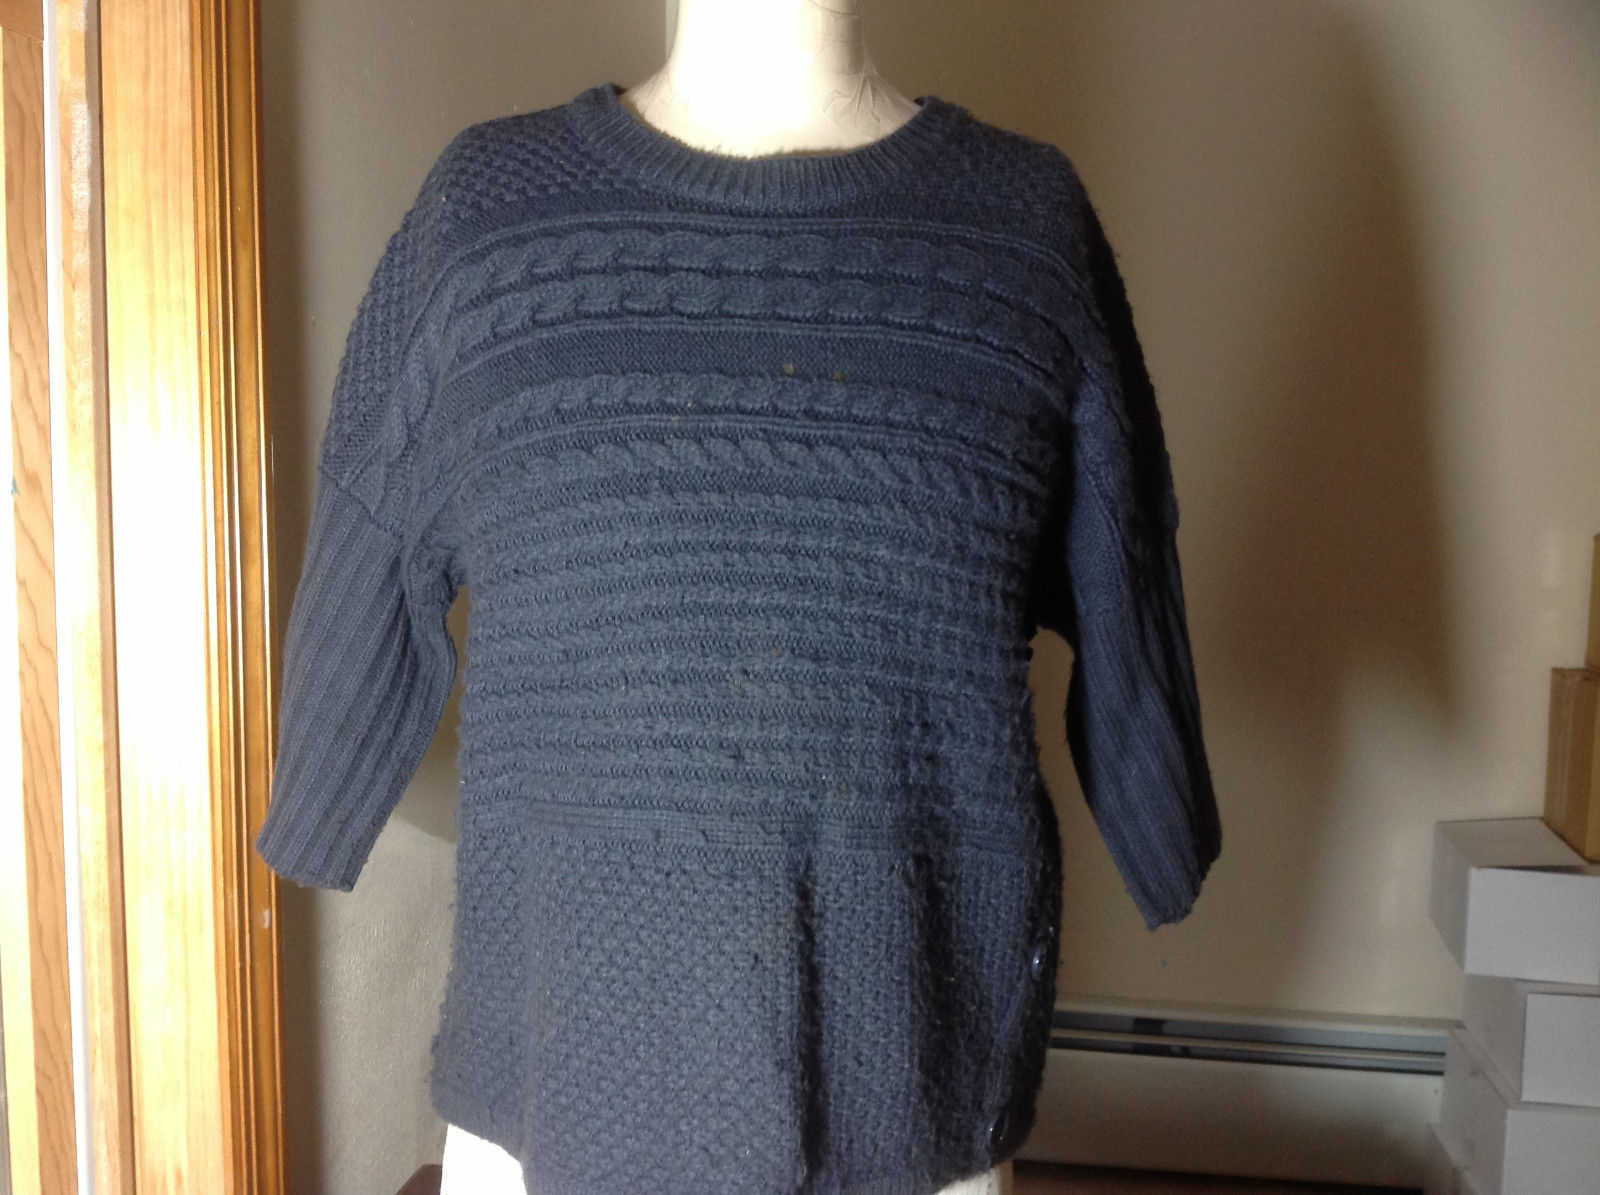 Dressbarn Charcoal Three Quarter Length Sleeves Cable Knit Sweater Size Medium